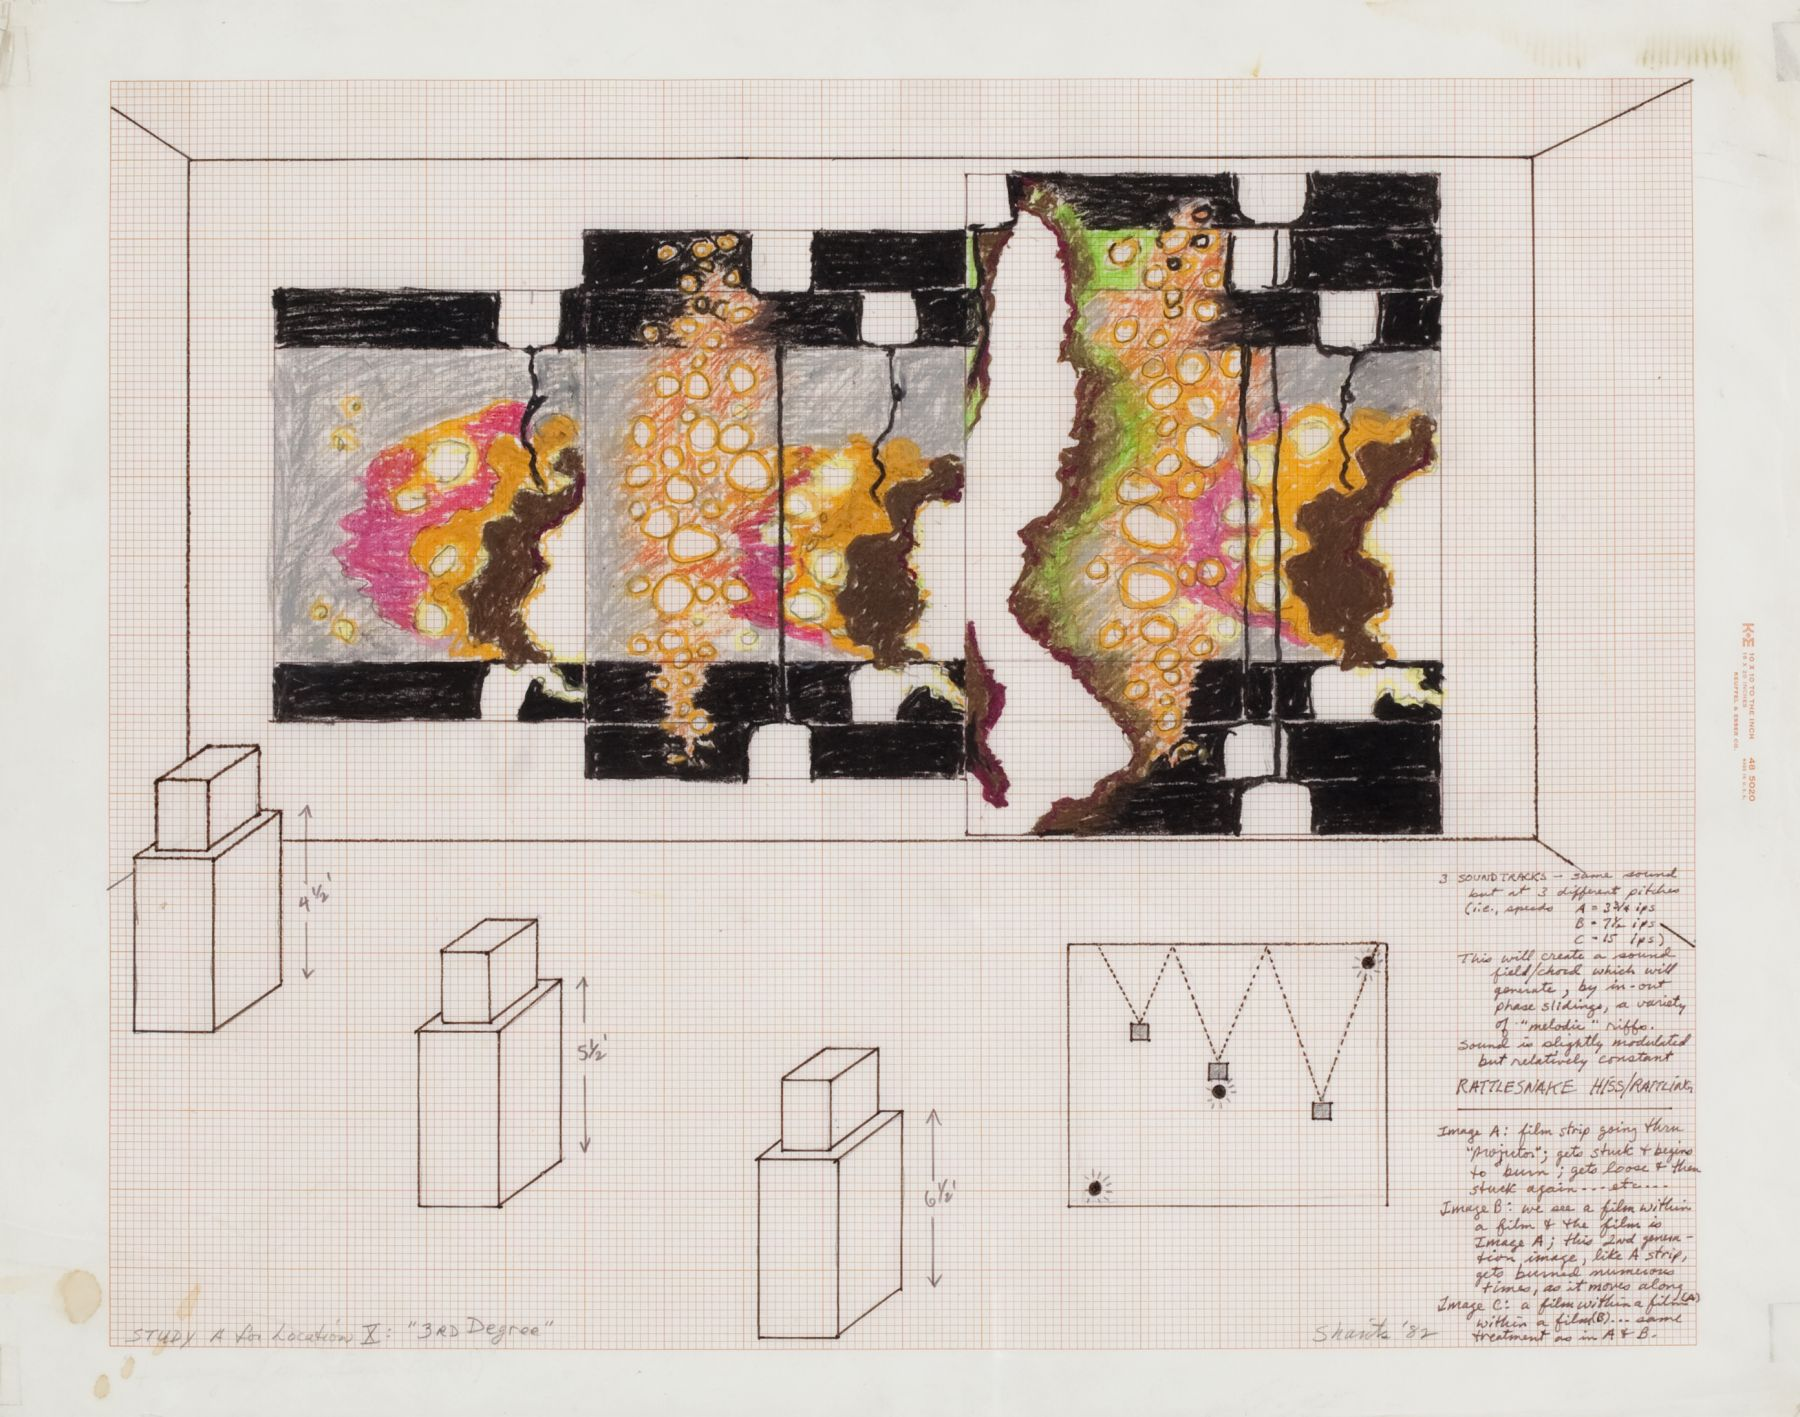 Paul Sharits, Study A for Location X, 3rd Degree, 1982, mixed media on velum, 18 x 23 inches